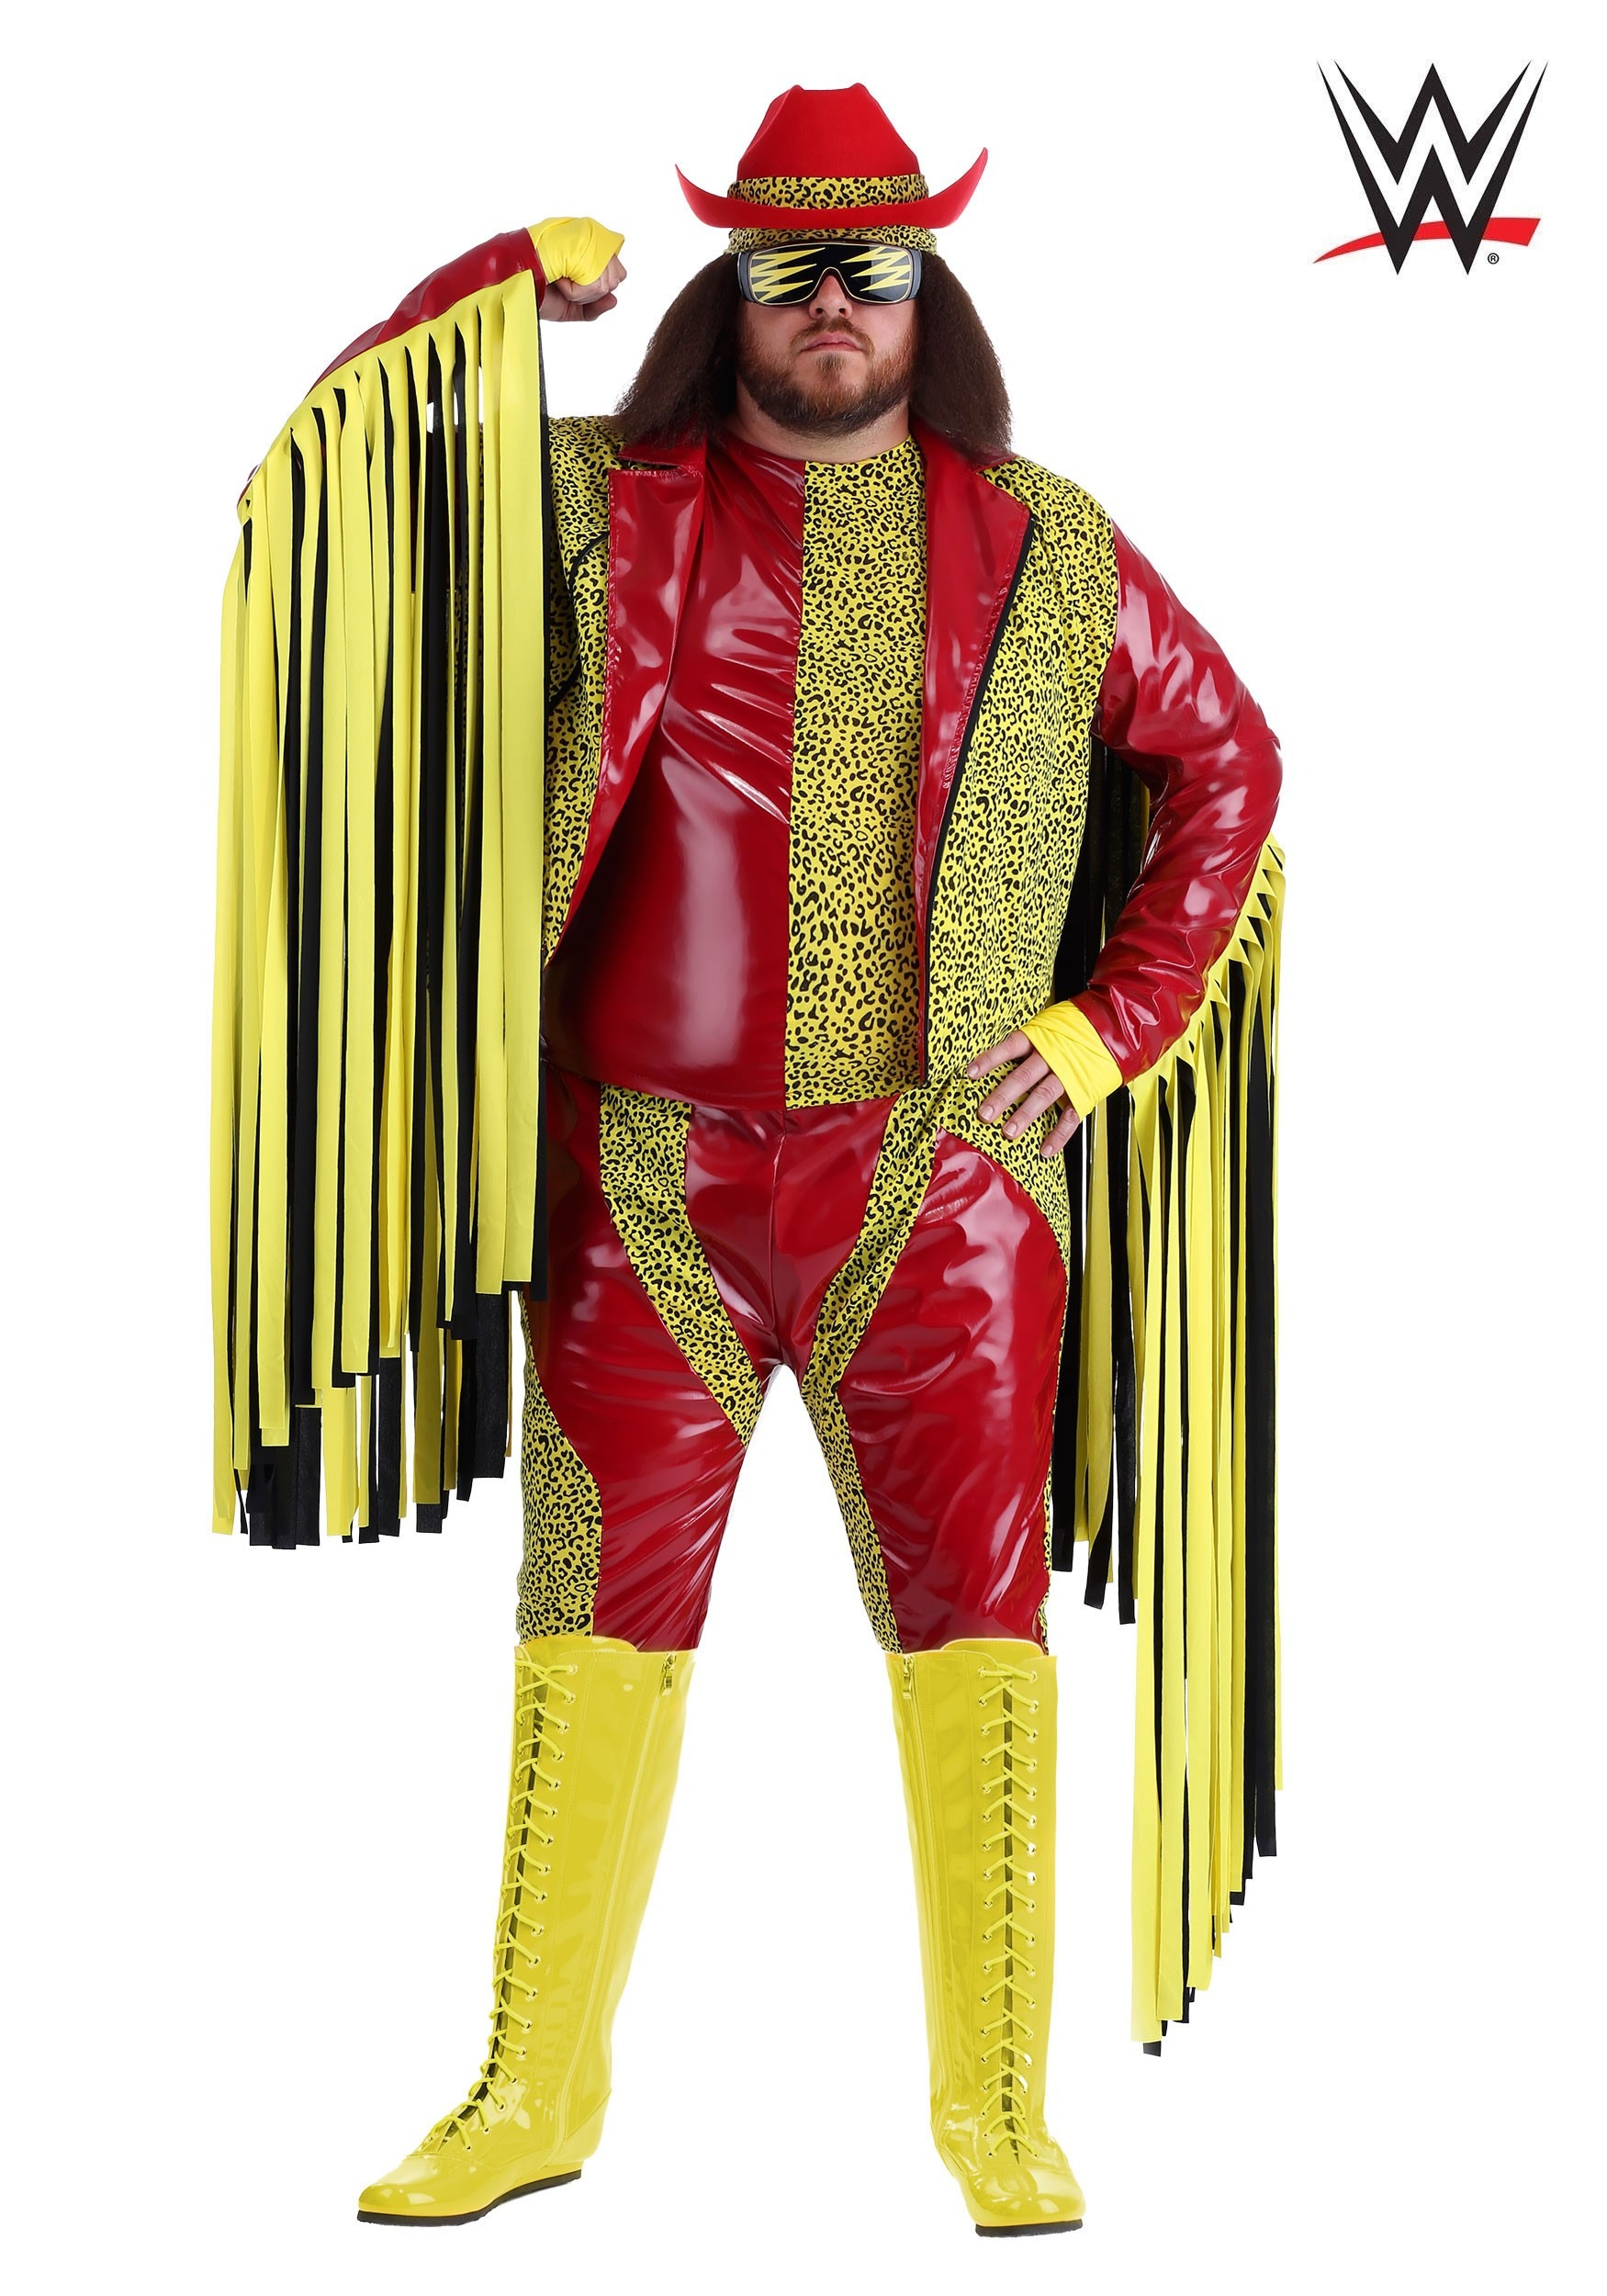 WWE Costumes For Kids & Adults - HalloweenCostumes.com